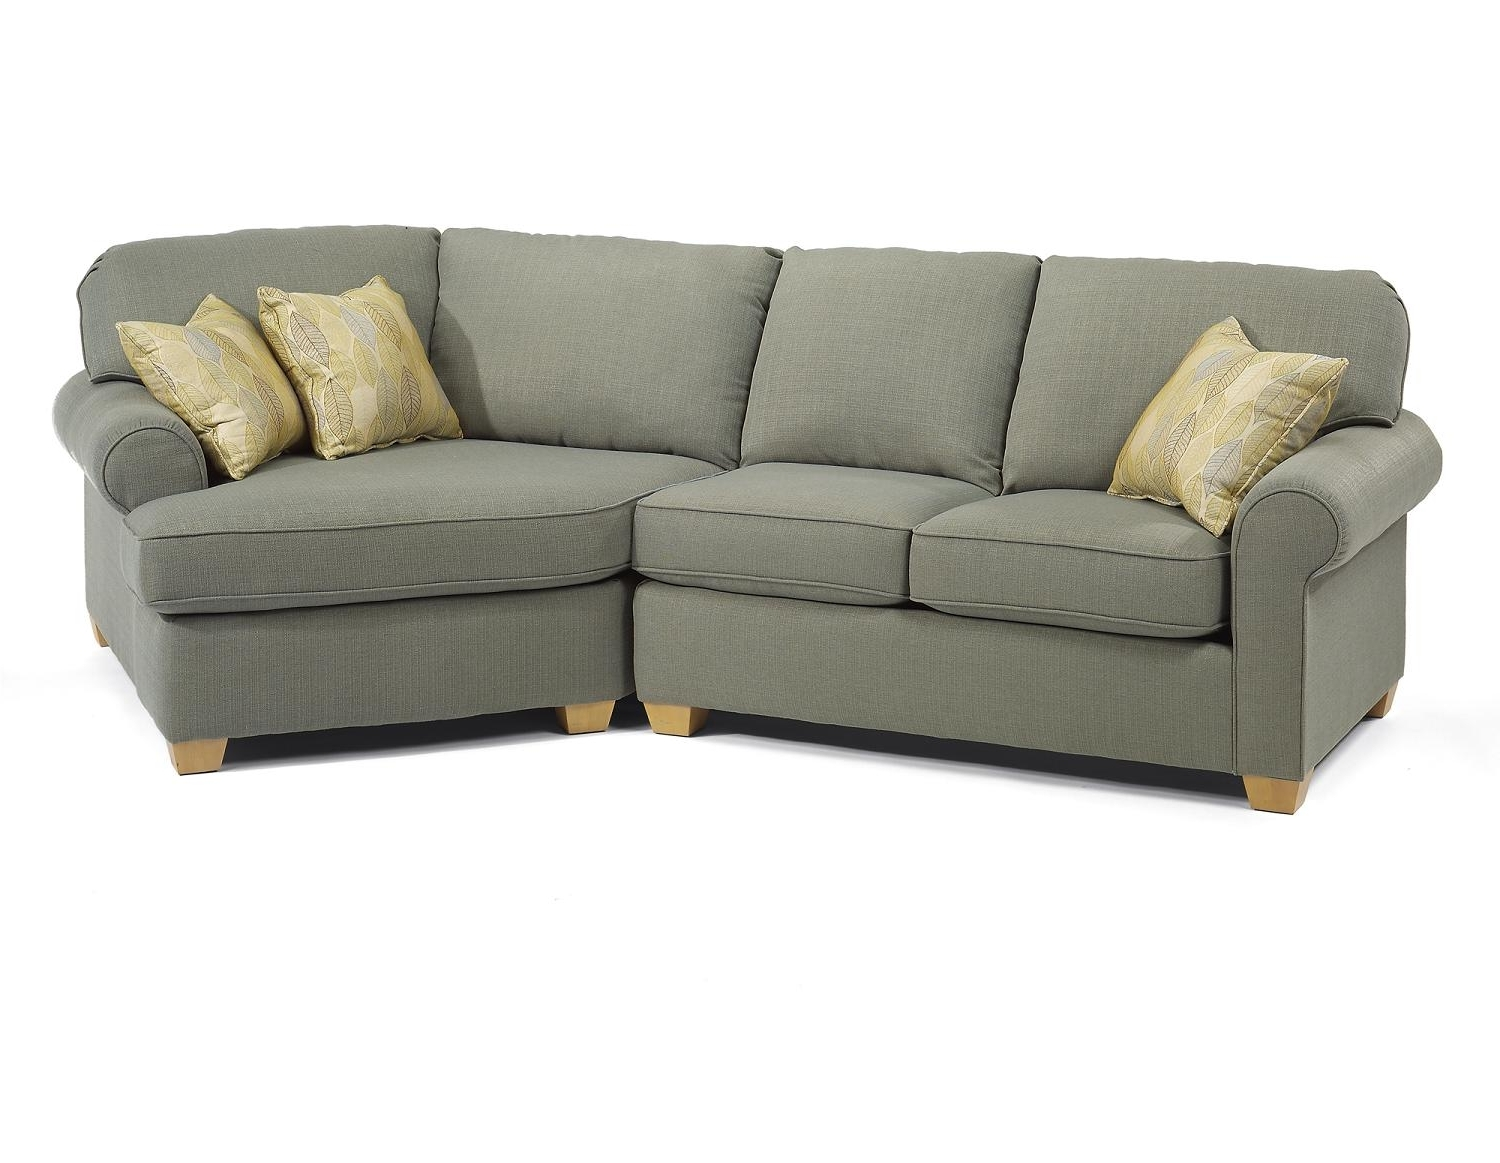 Chaise Couches In Recent Chaise Sofa – Interior4You (View 1 of 15)